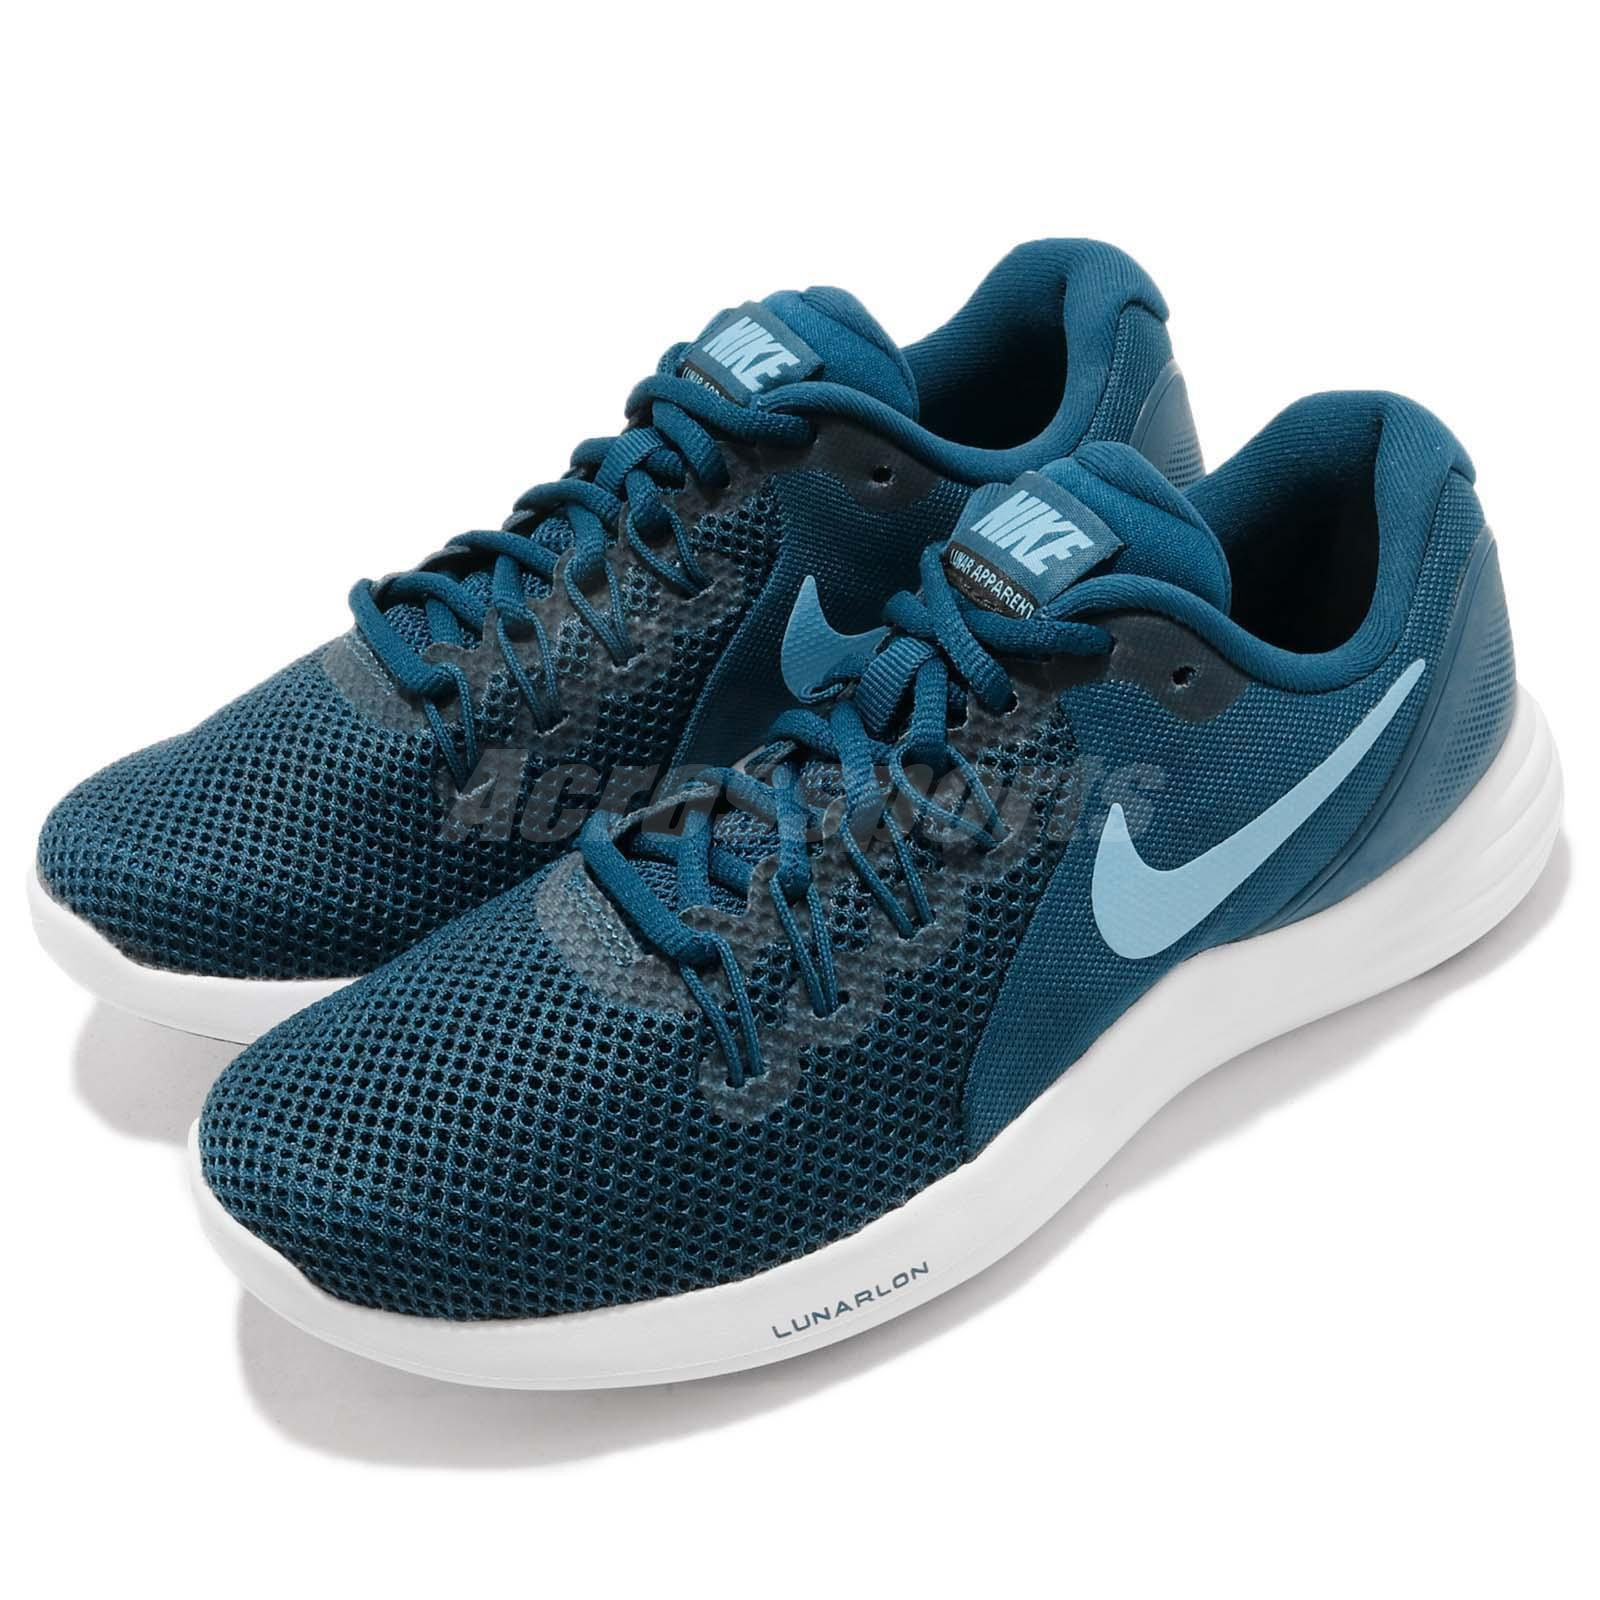 brand new bef6e b19cf Details about Nike Wmns Lunar Apparent Blue White Women Running Shoes  Sneakers 908998-404